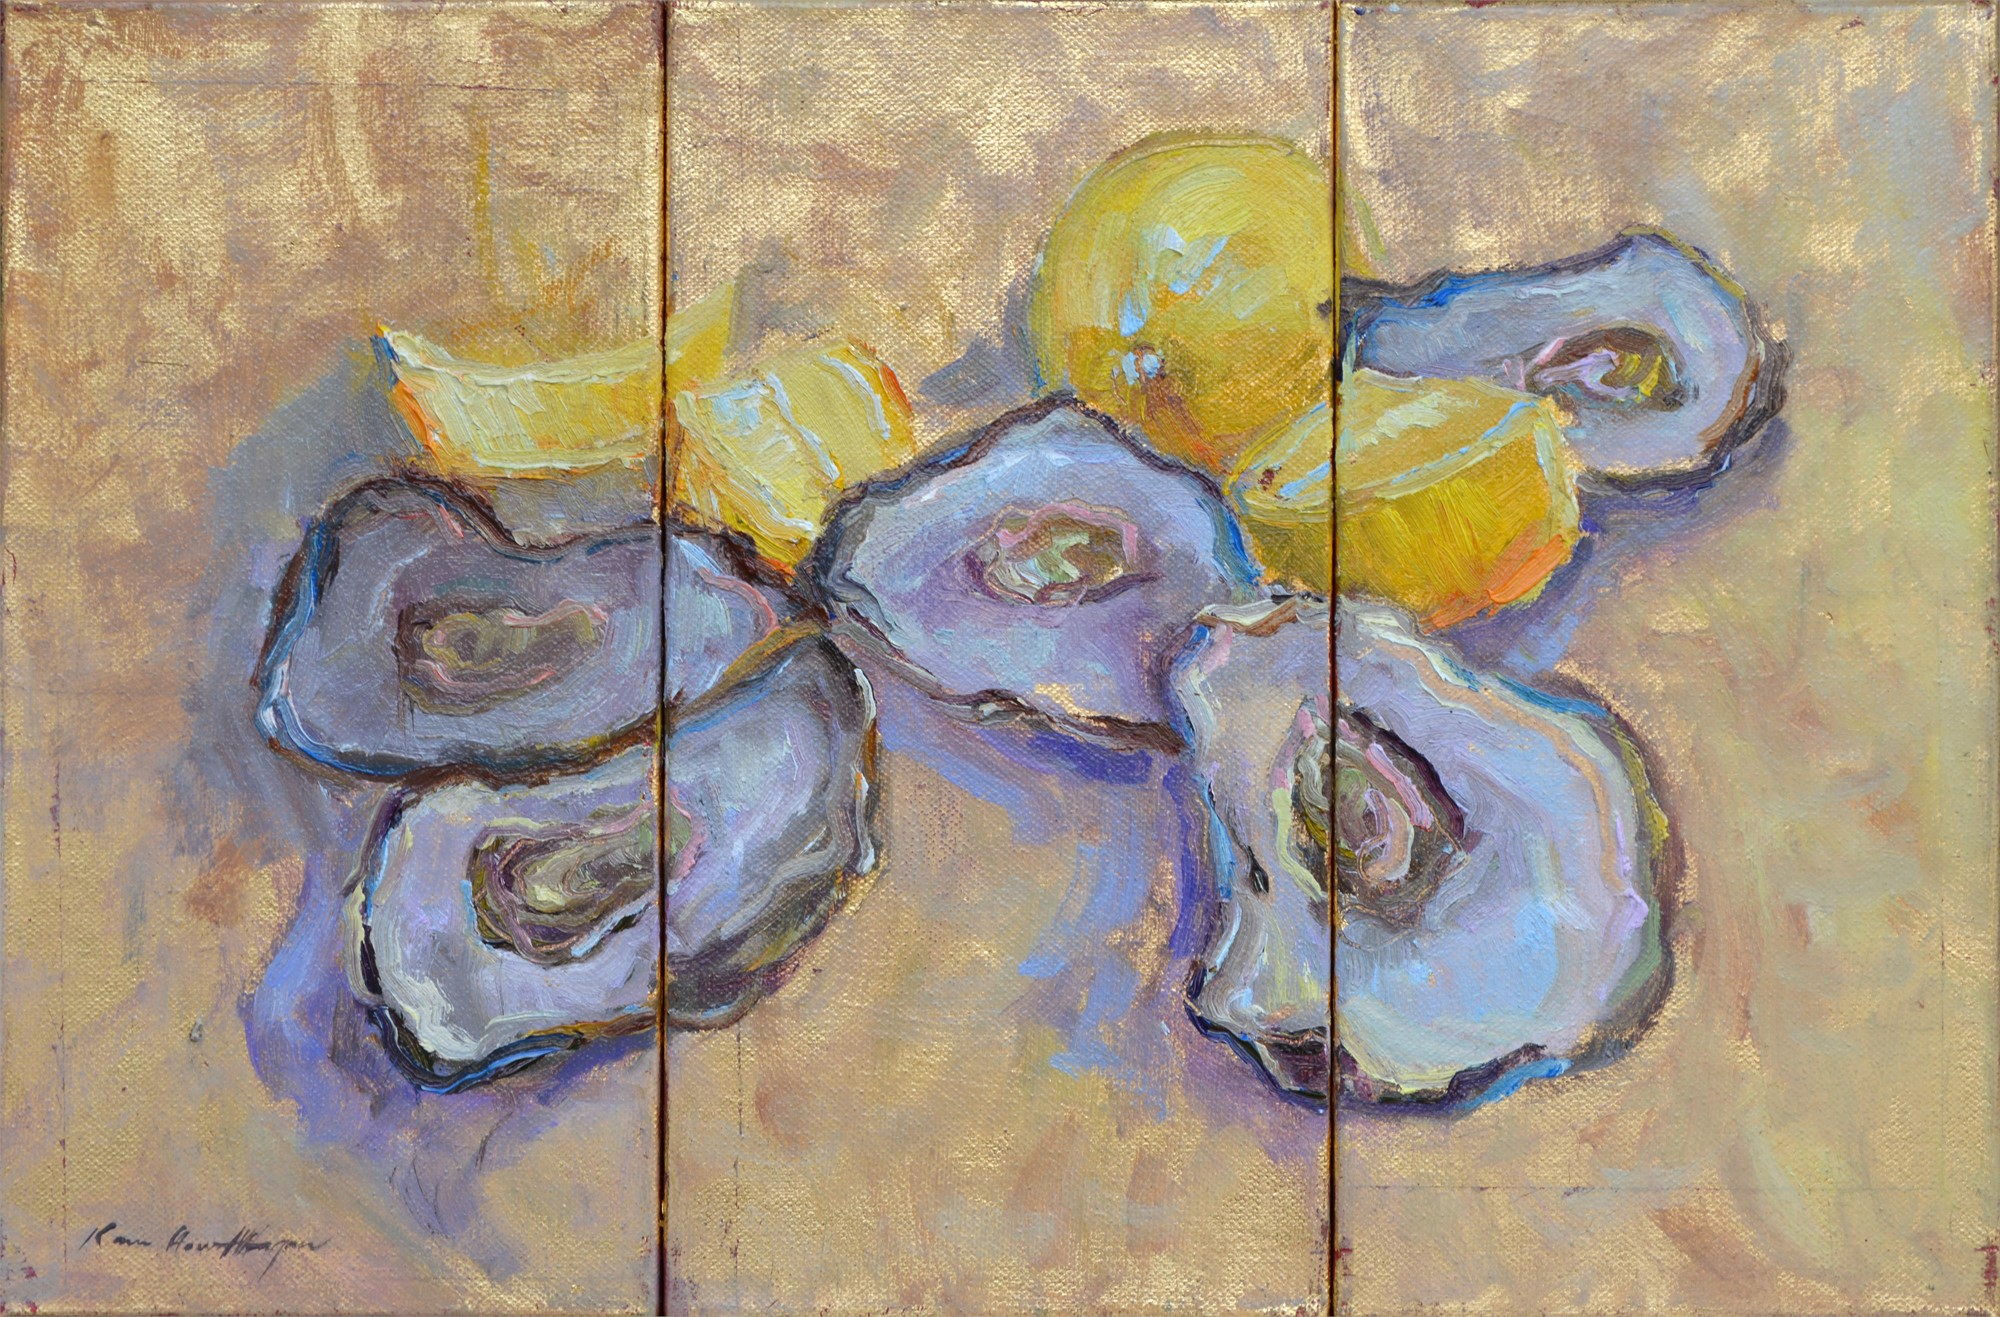 Oysters on Gold 1,2,&3 (Triptych) by Karen Hewitt Hagan